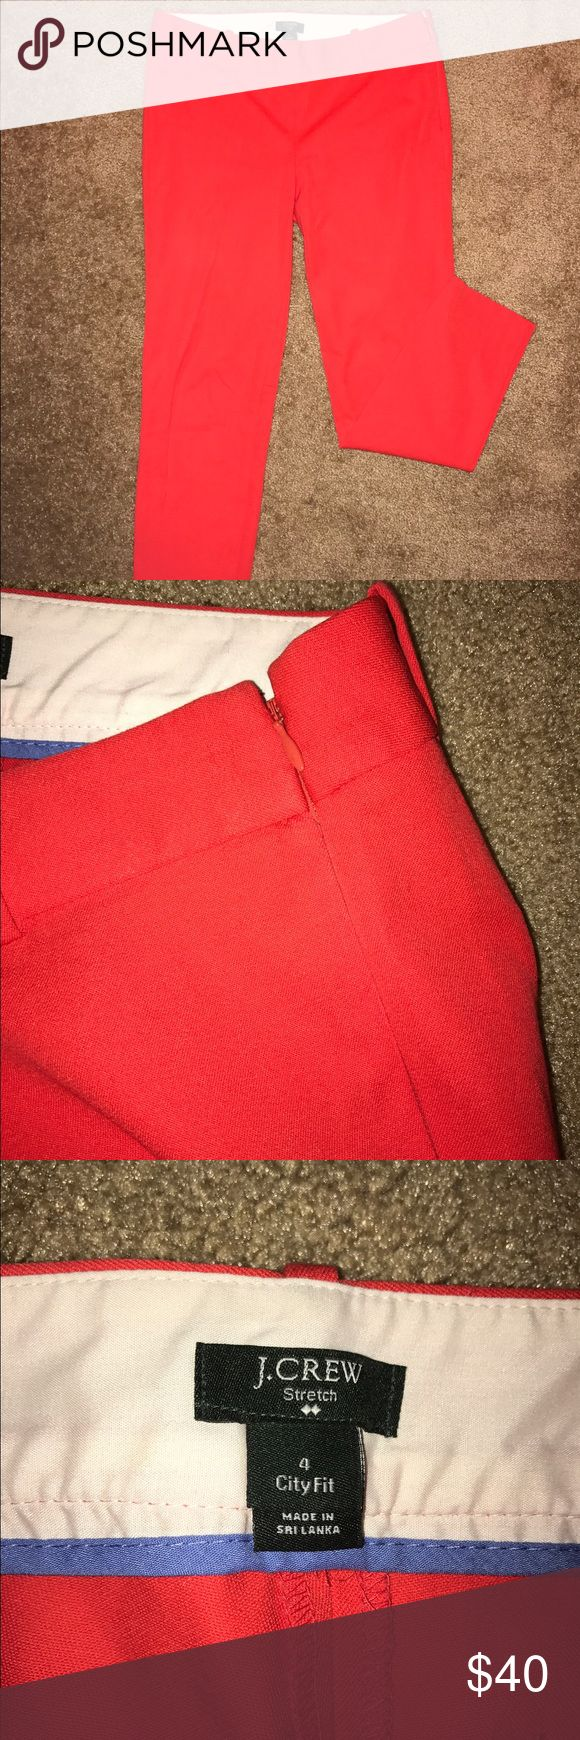 J. CREW City Fit orange/red skinny pants Stretchy orange fabric, side zipper, super comfortable and gently used. Great condition size 4. Office chic 💚💚💚❤❤❤ J. Crew Pants Ankle & Cropped